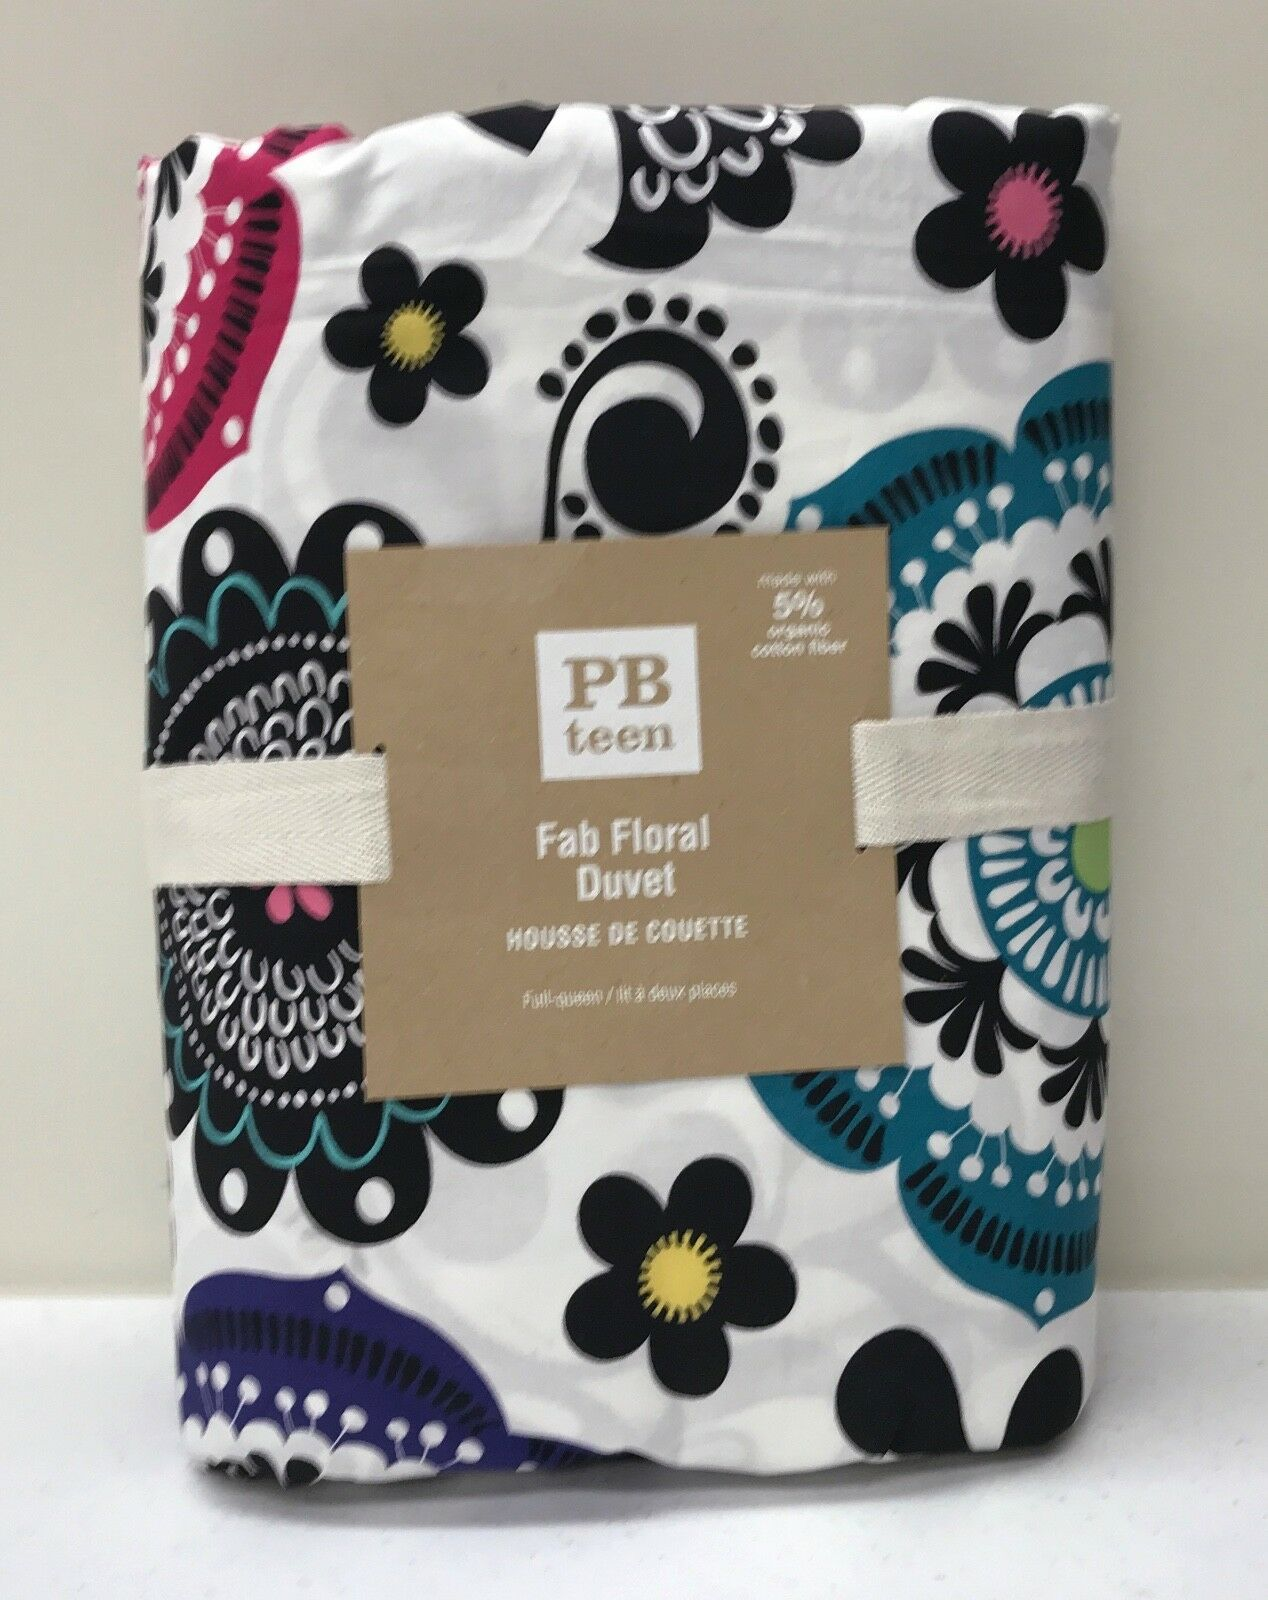 NEW Pottery Barn TEEN Fab Floral FULL QUEEN Duvet Cover